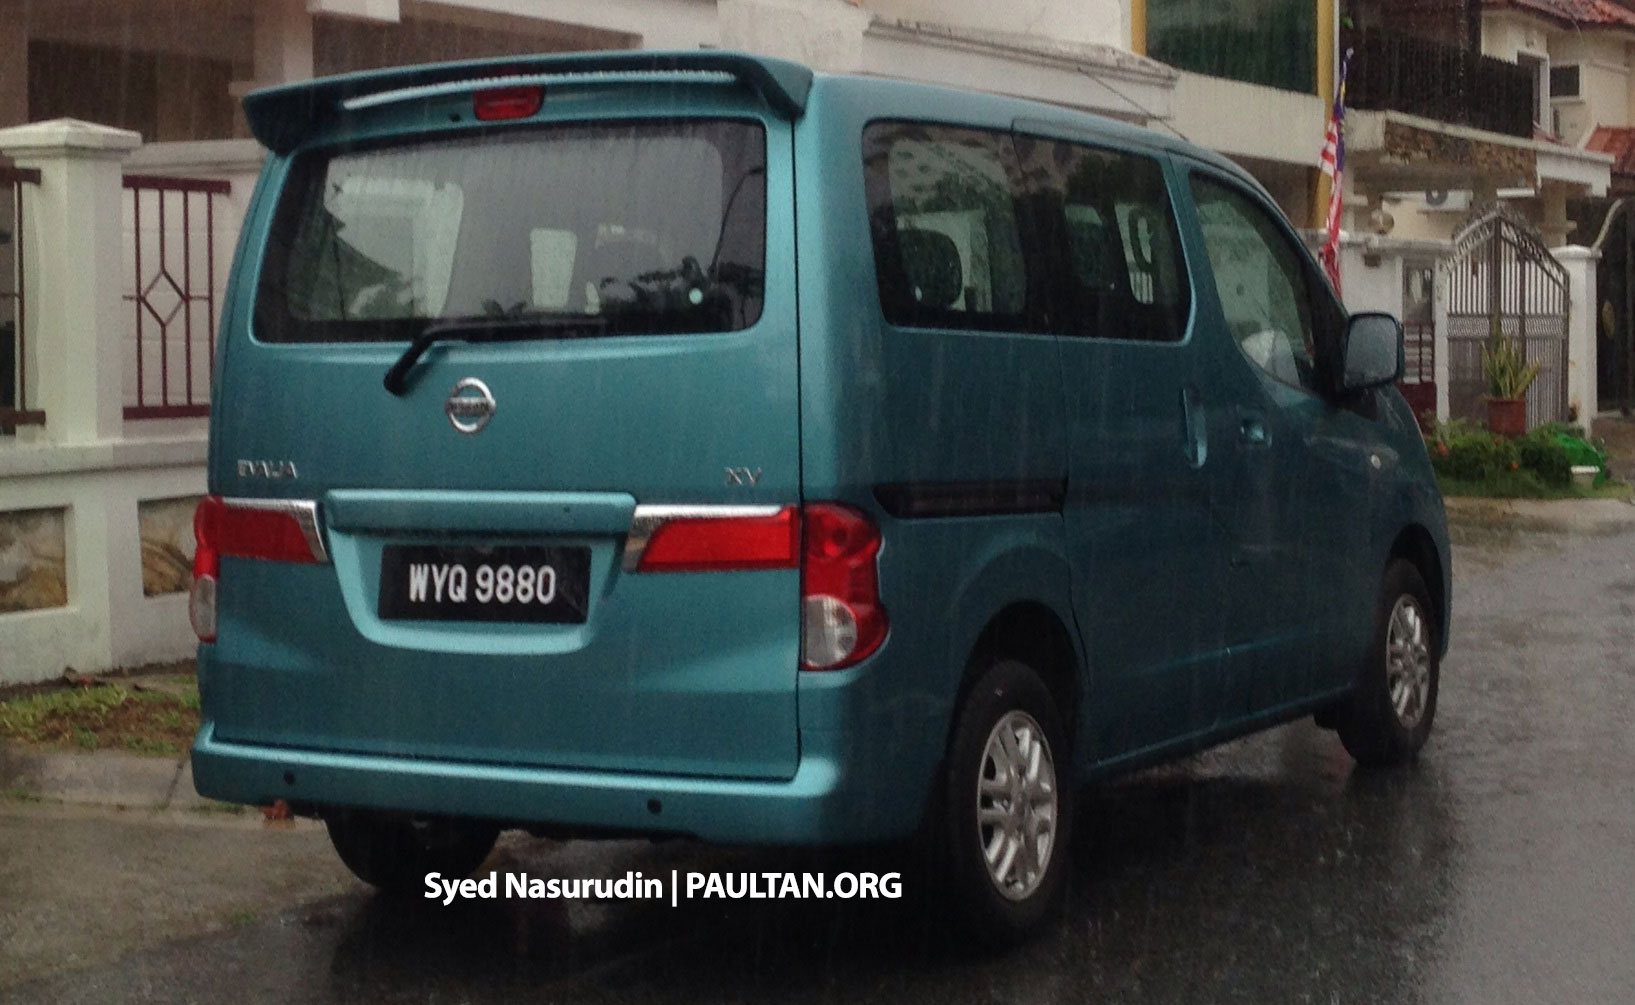 nissan evalia spotted in malaysia nv200 seven seater passenger window van being evaluated. Black Bedroom Furniture Sets. Home Design Ideas